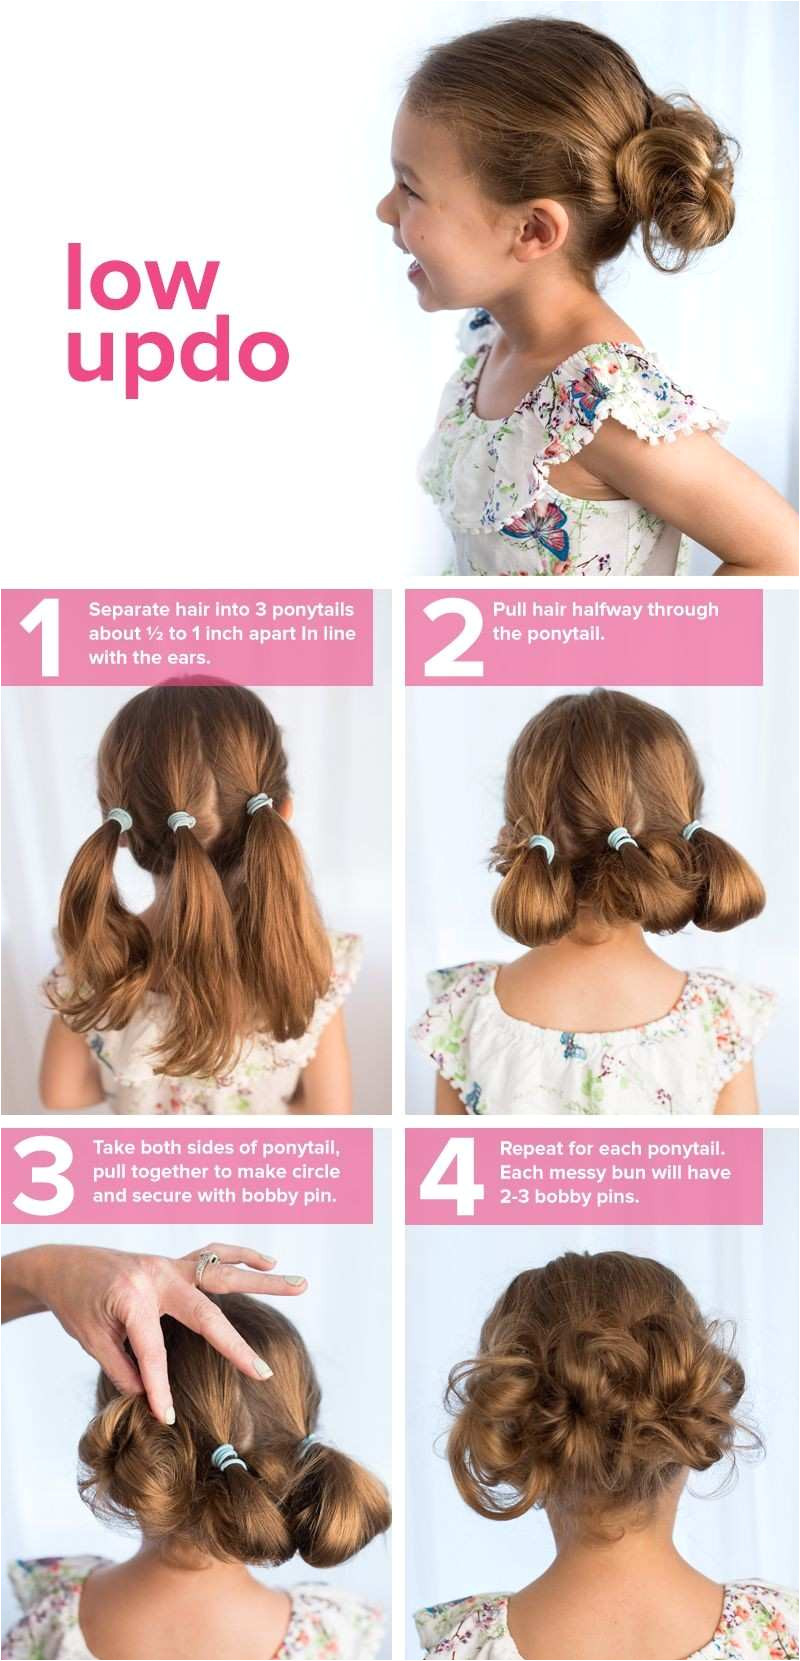 5 fast easy cute hairstyles for girls BACK TO SCHOOL